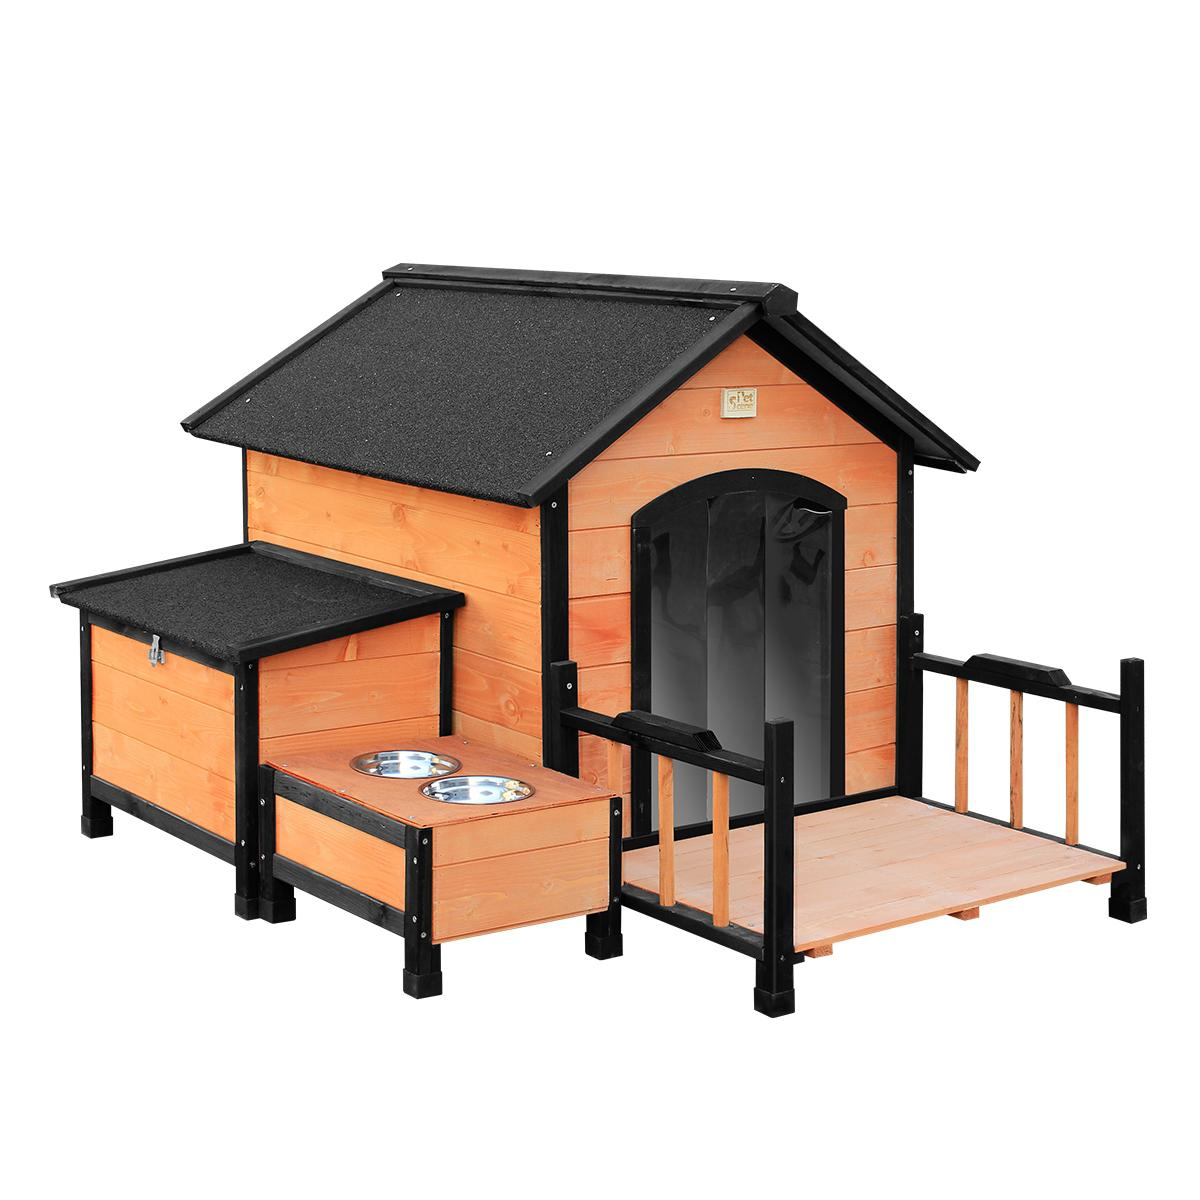 l size timber dog kennel pet dog house w removable floor patio storage box food bowls